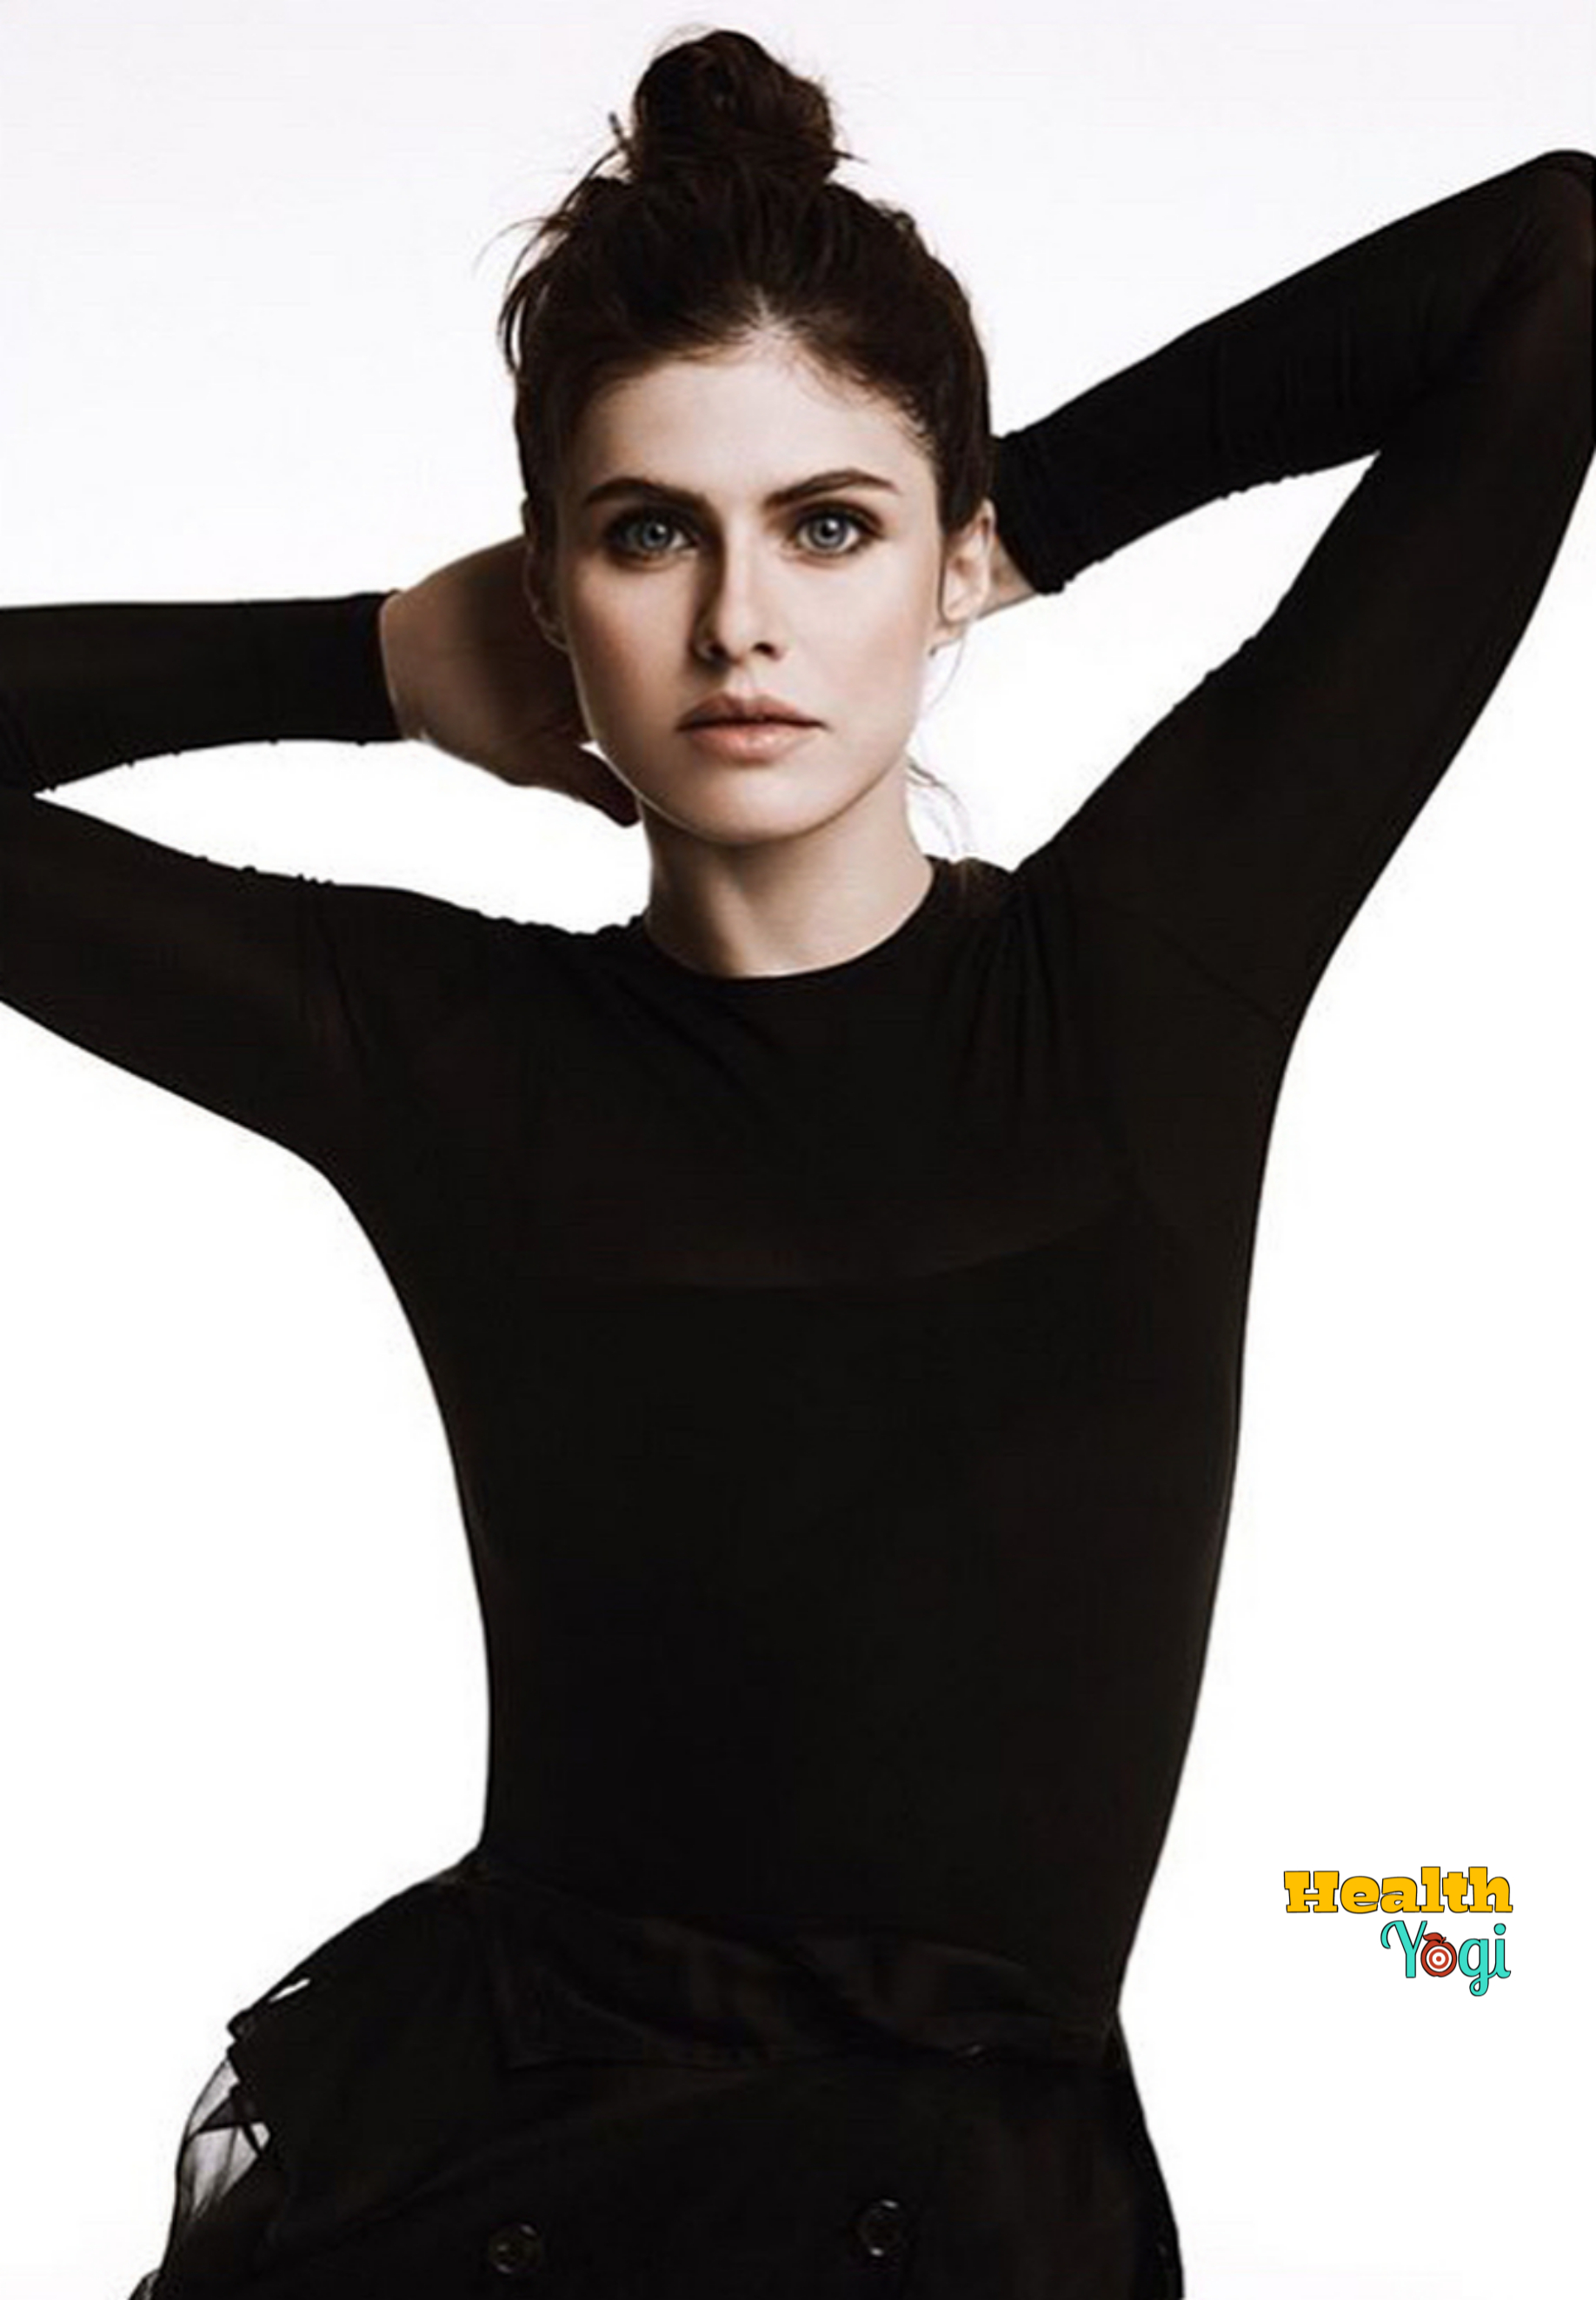 Alexandra Daddario Workout Routine and Diet Plan